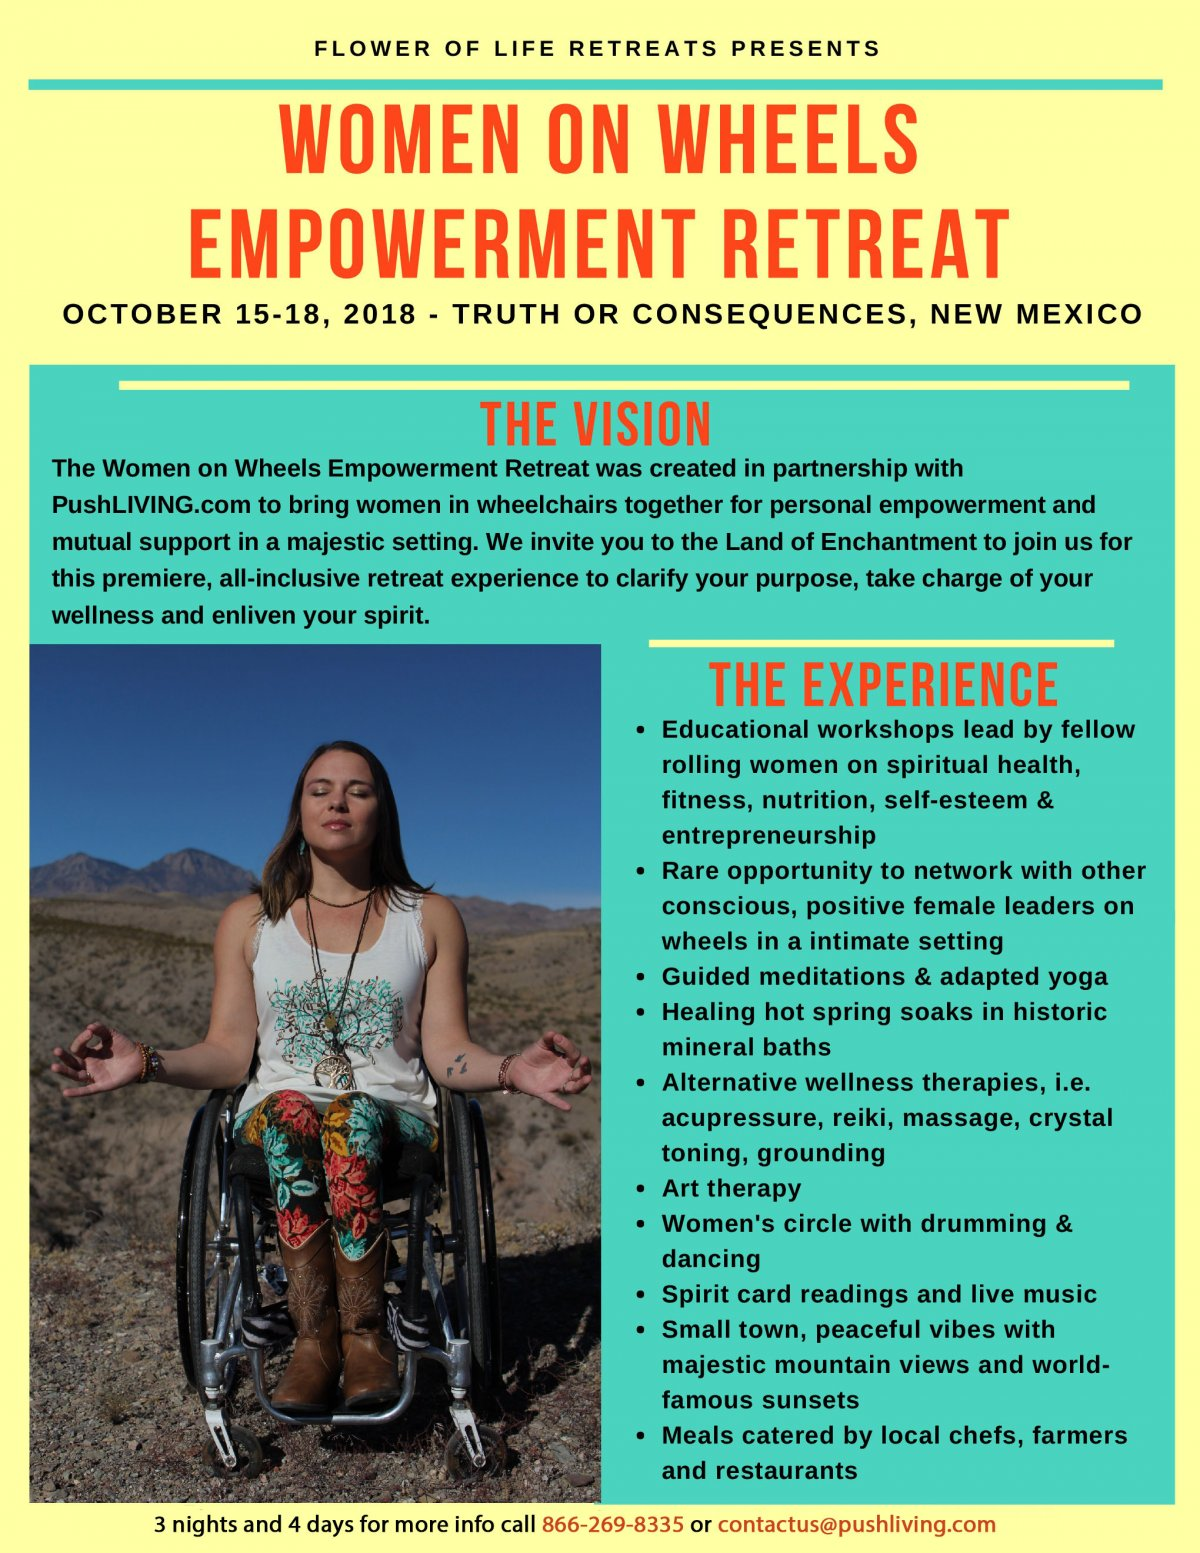 Women on wheels empowerment retreat 1200x1553 - WOW: Woman on Wheels Fueling Empowerment